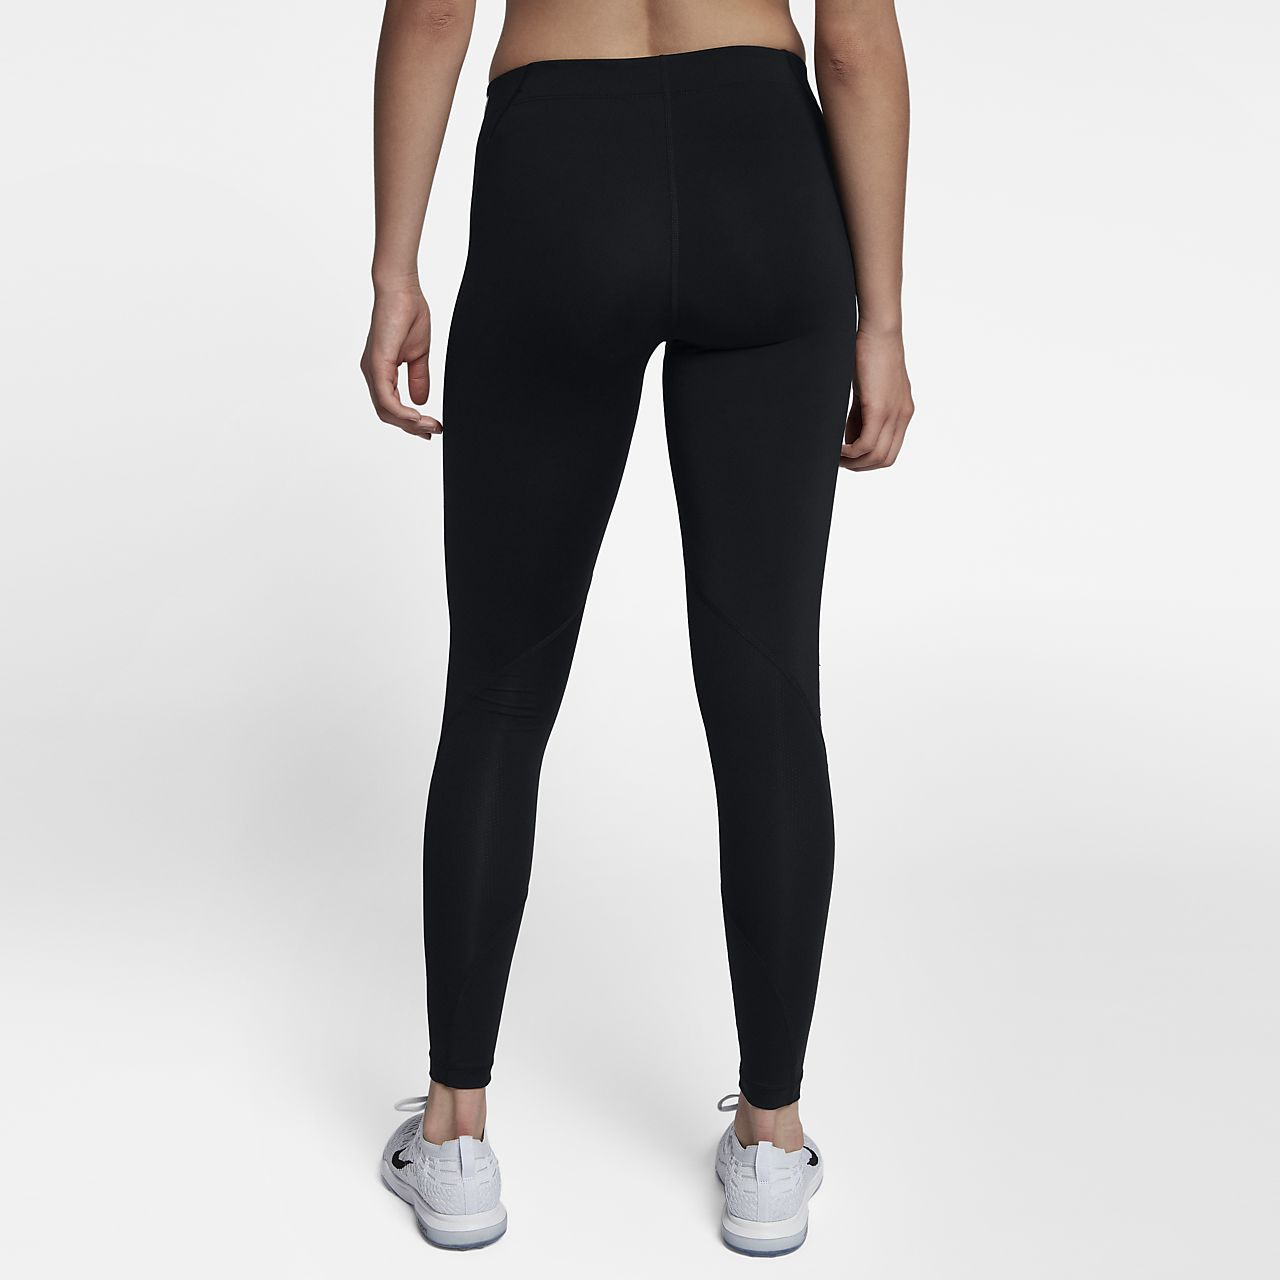 new product 400f0 77861 ... Nike Pro Women s Mid-Rise Training Tights